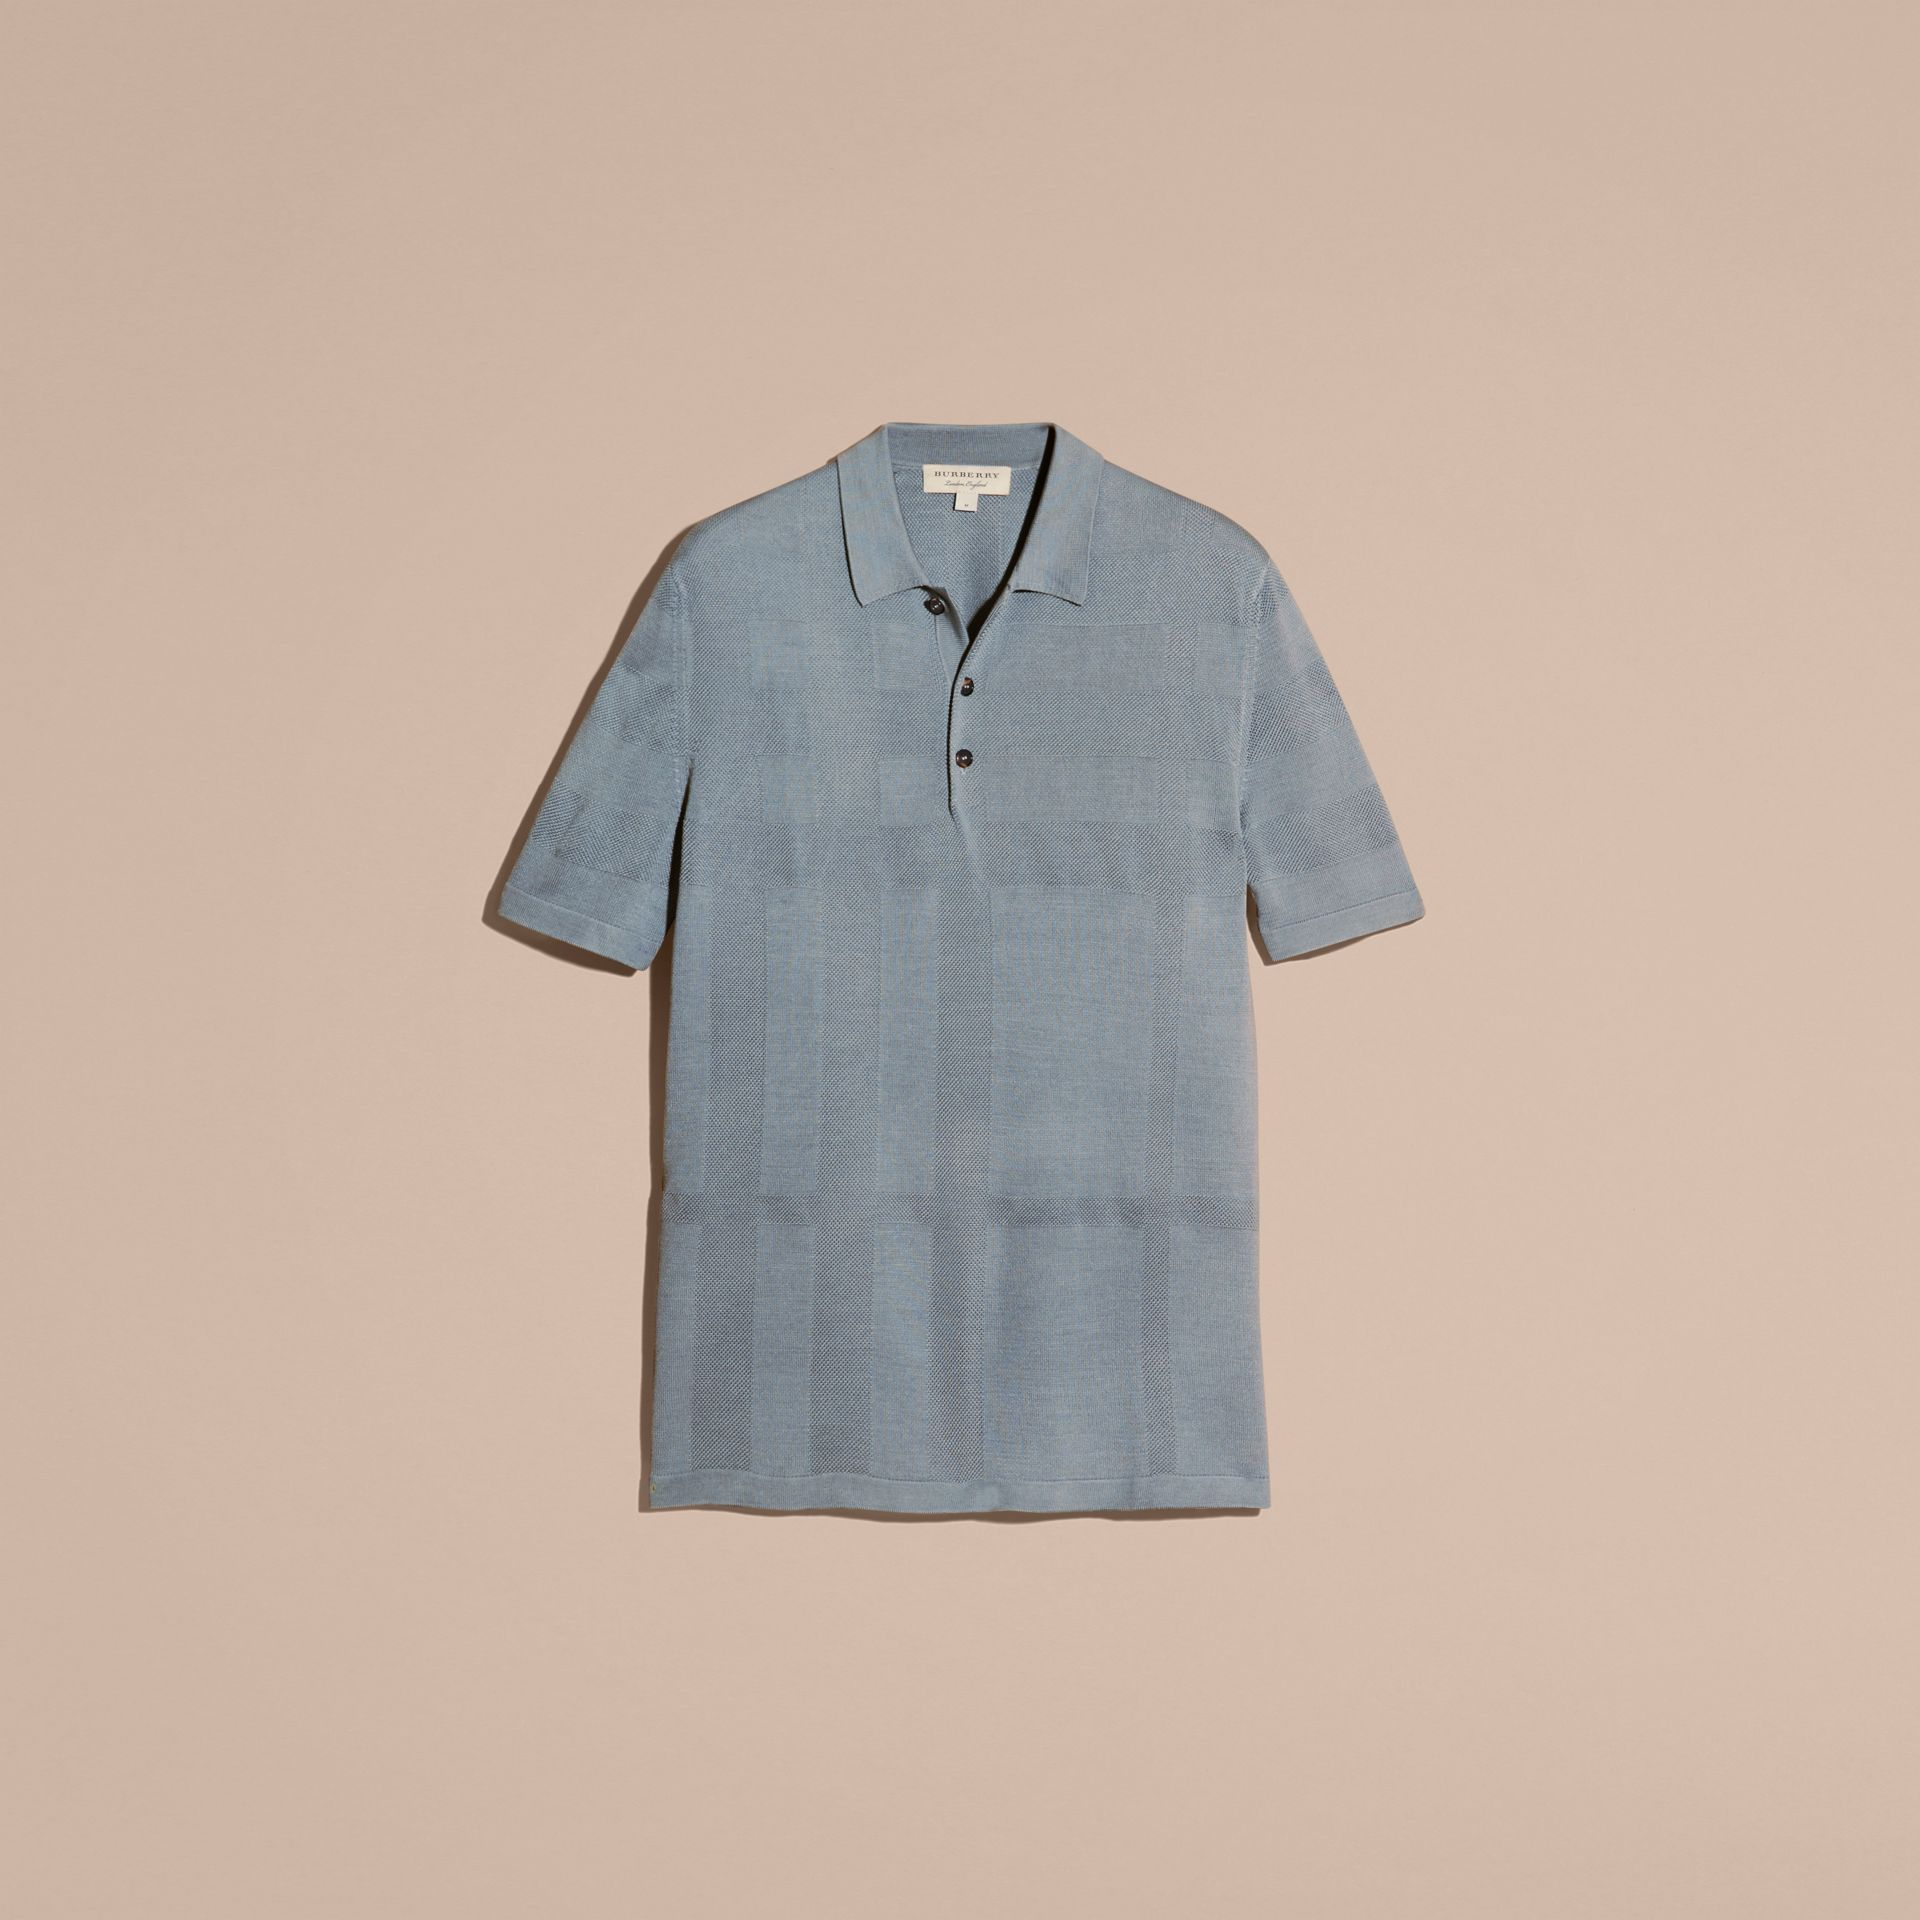 Check Jacquard Piqué Silk Cotton Polo Shirt in Slate Blue - Men | Burberry - gallery image 4